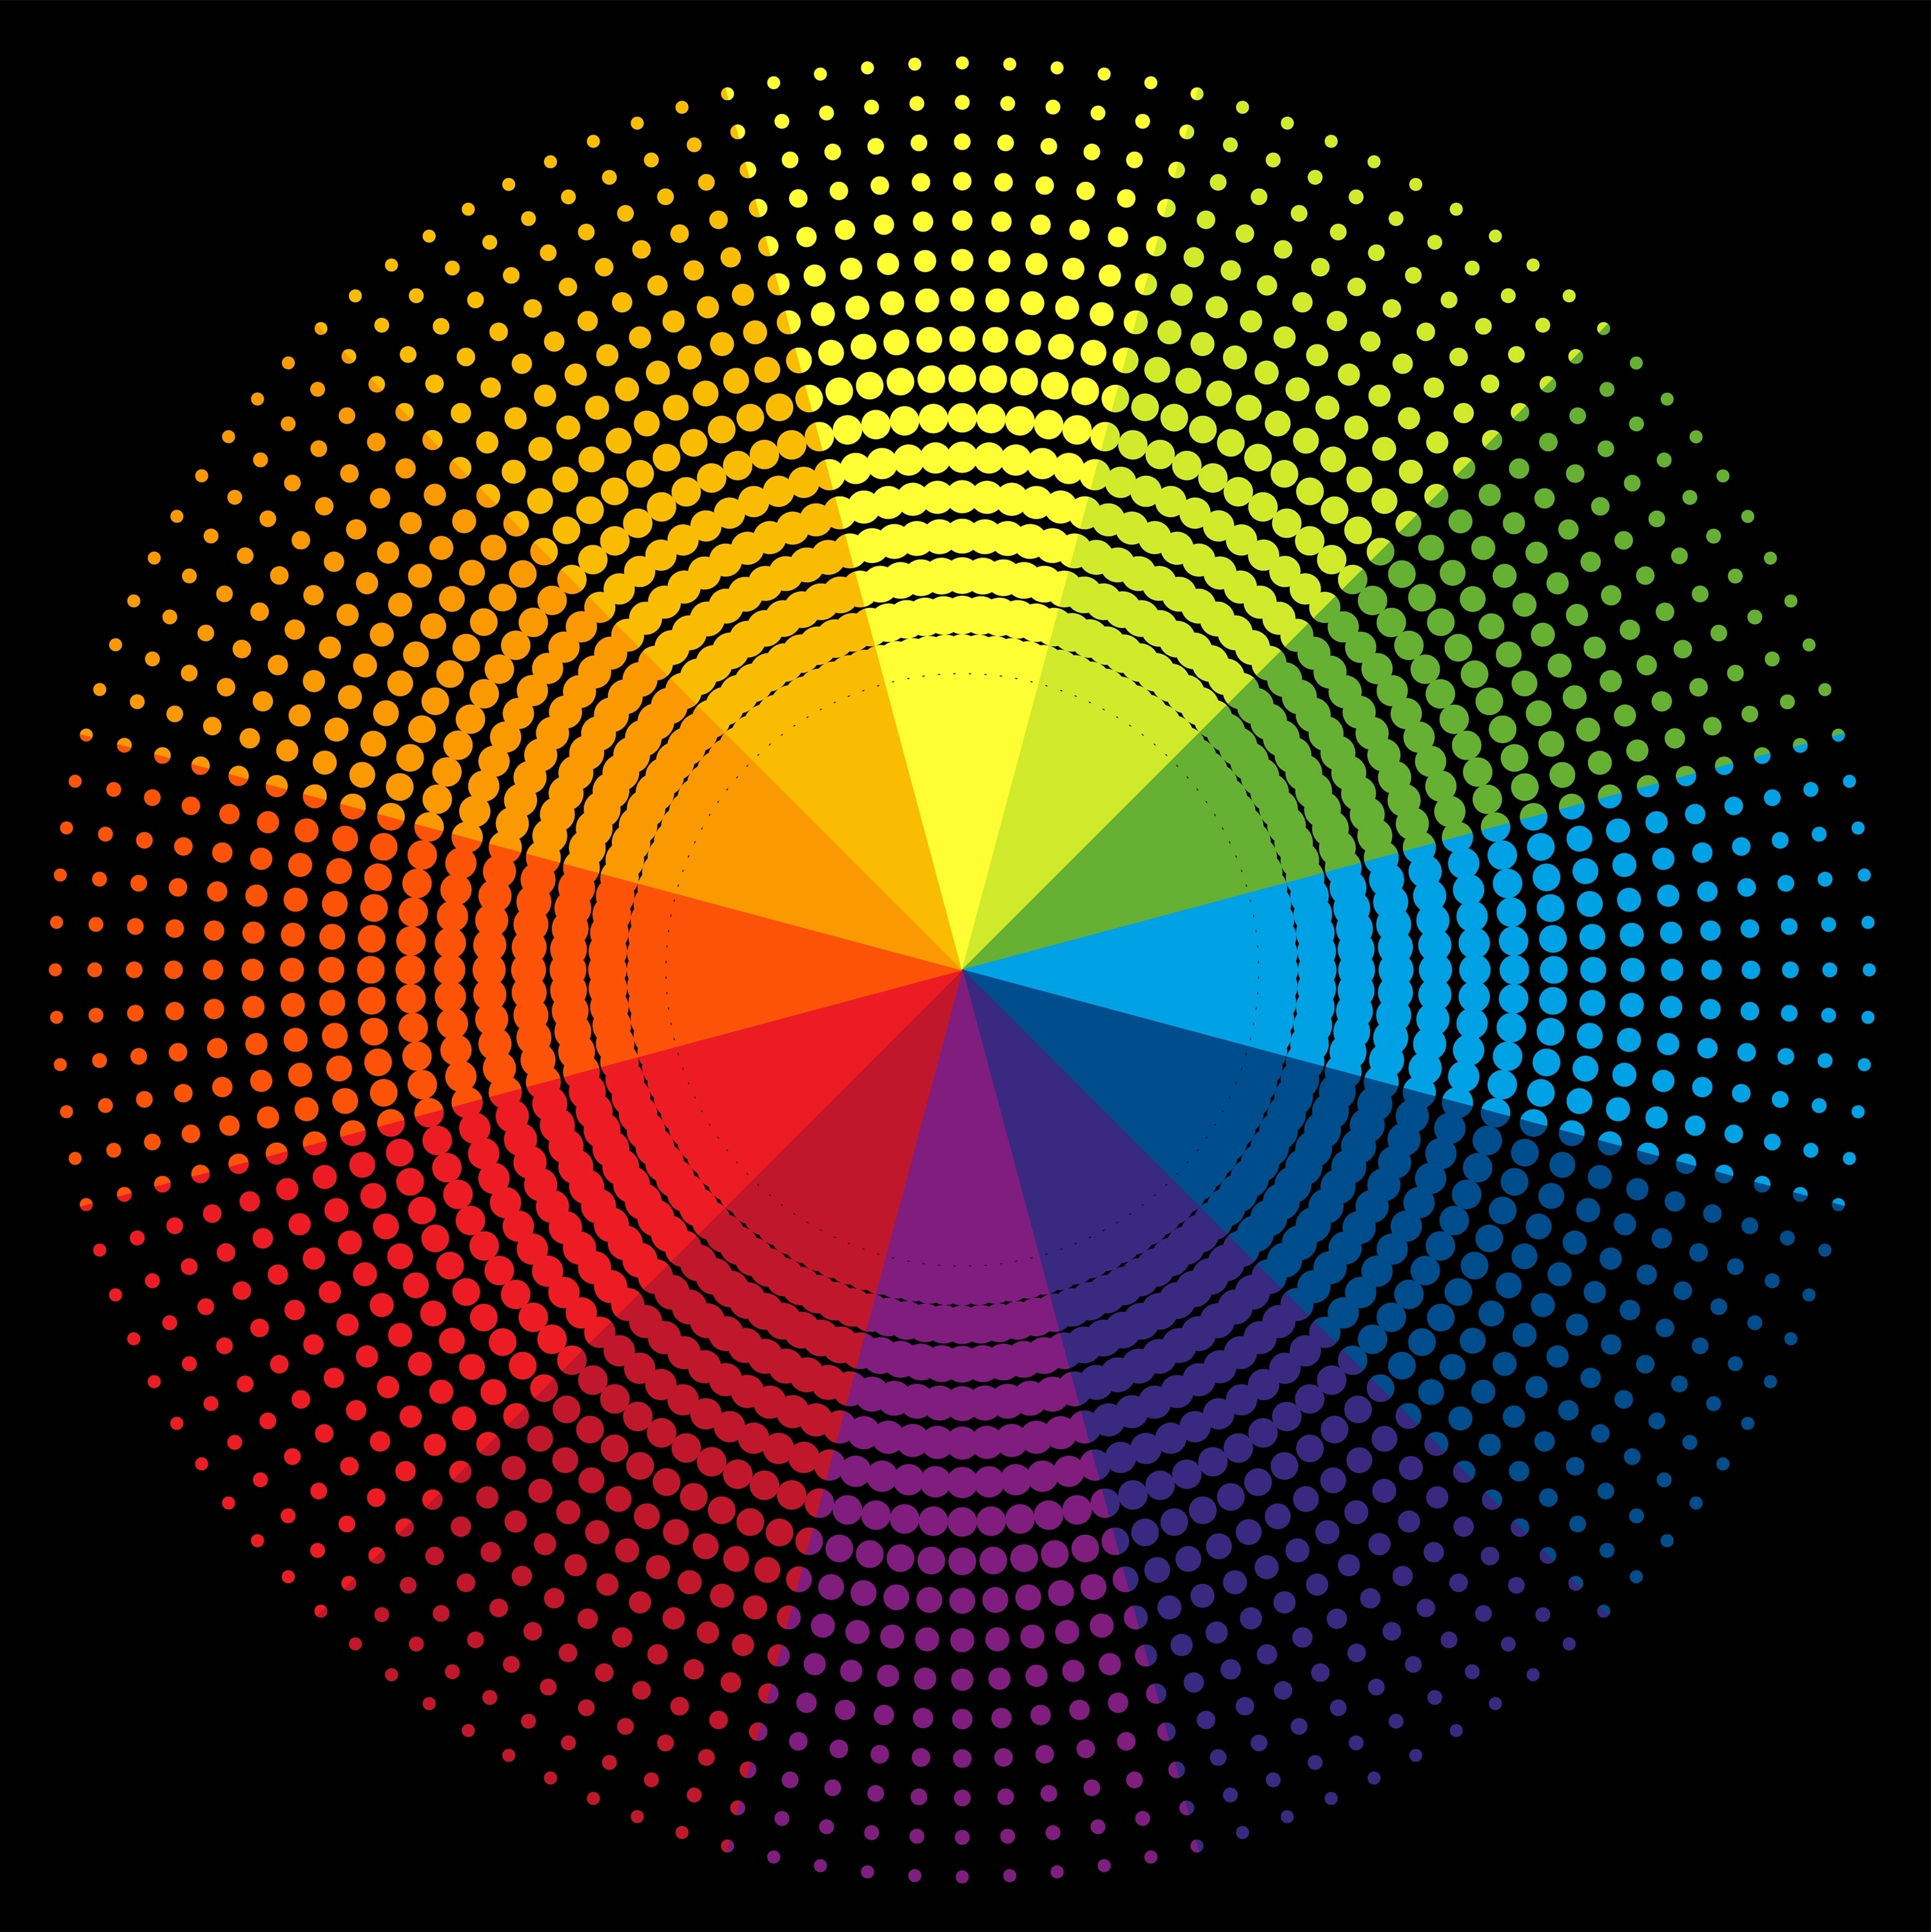 Roy G Biv color wheel